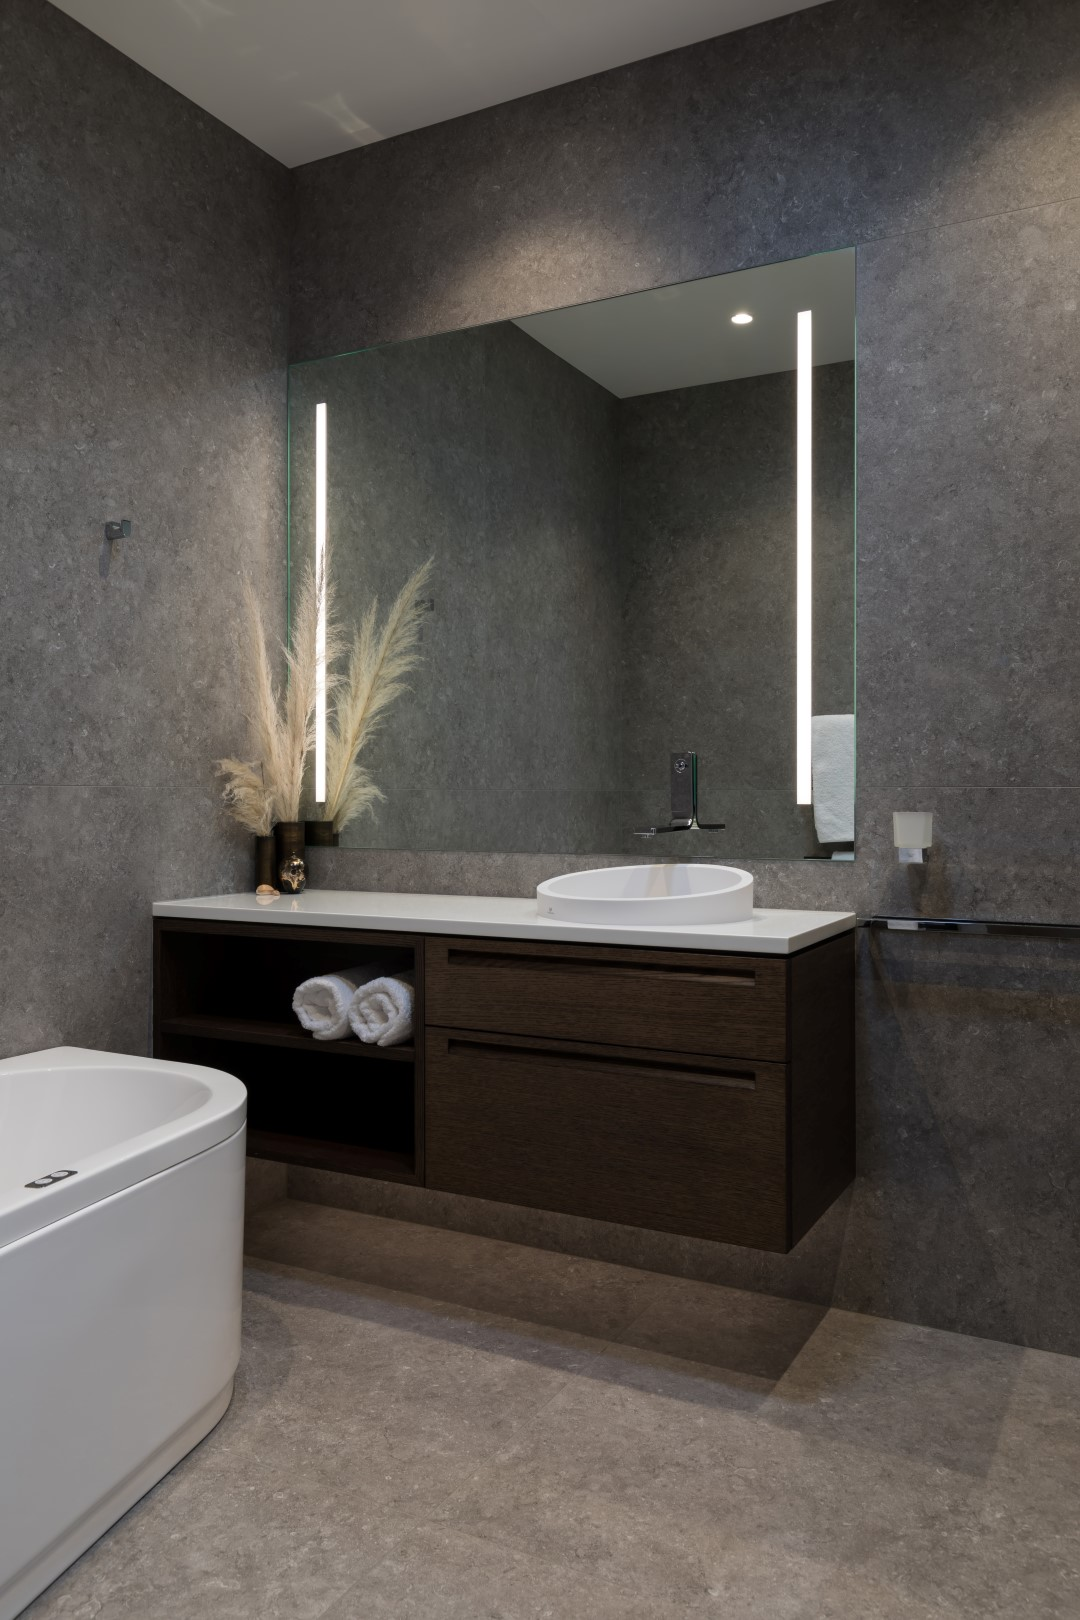 fittings-furnishings-finishes-arcline-architecture-design-home-northland